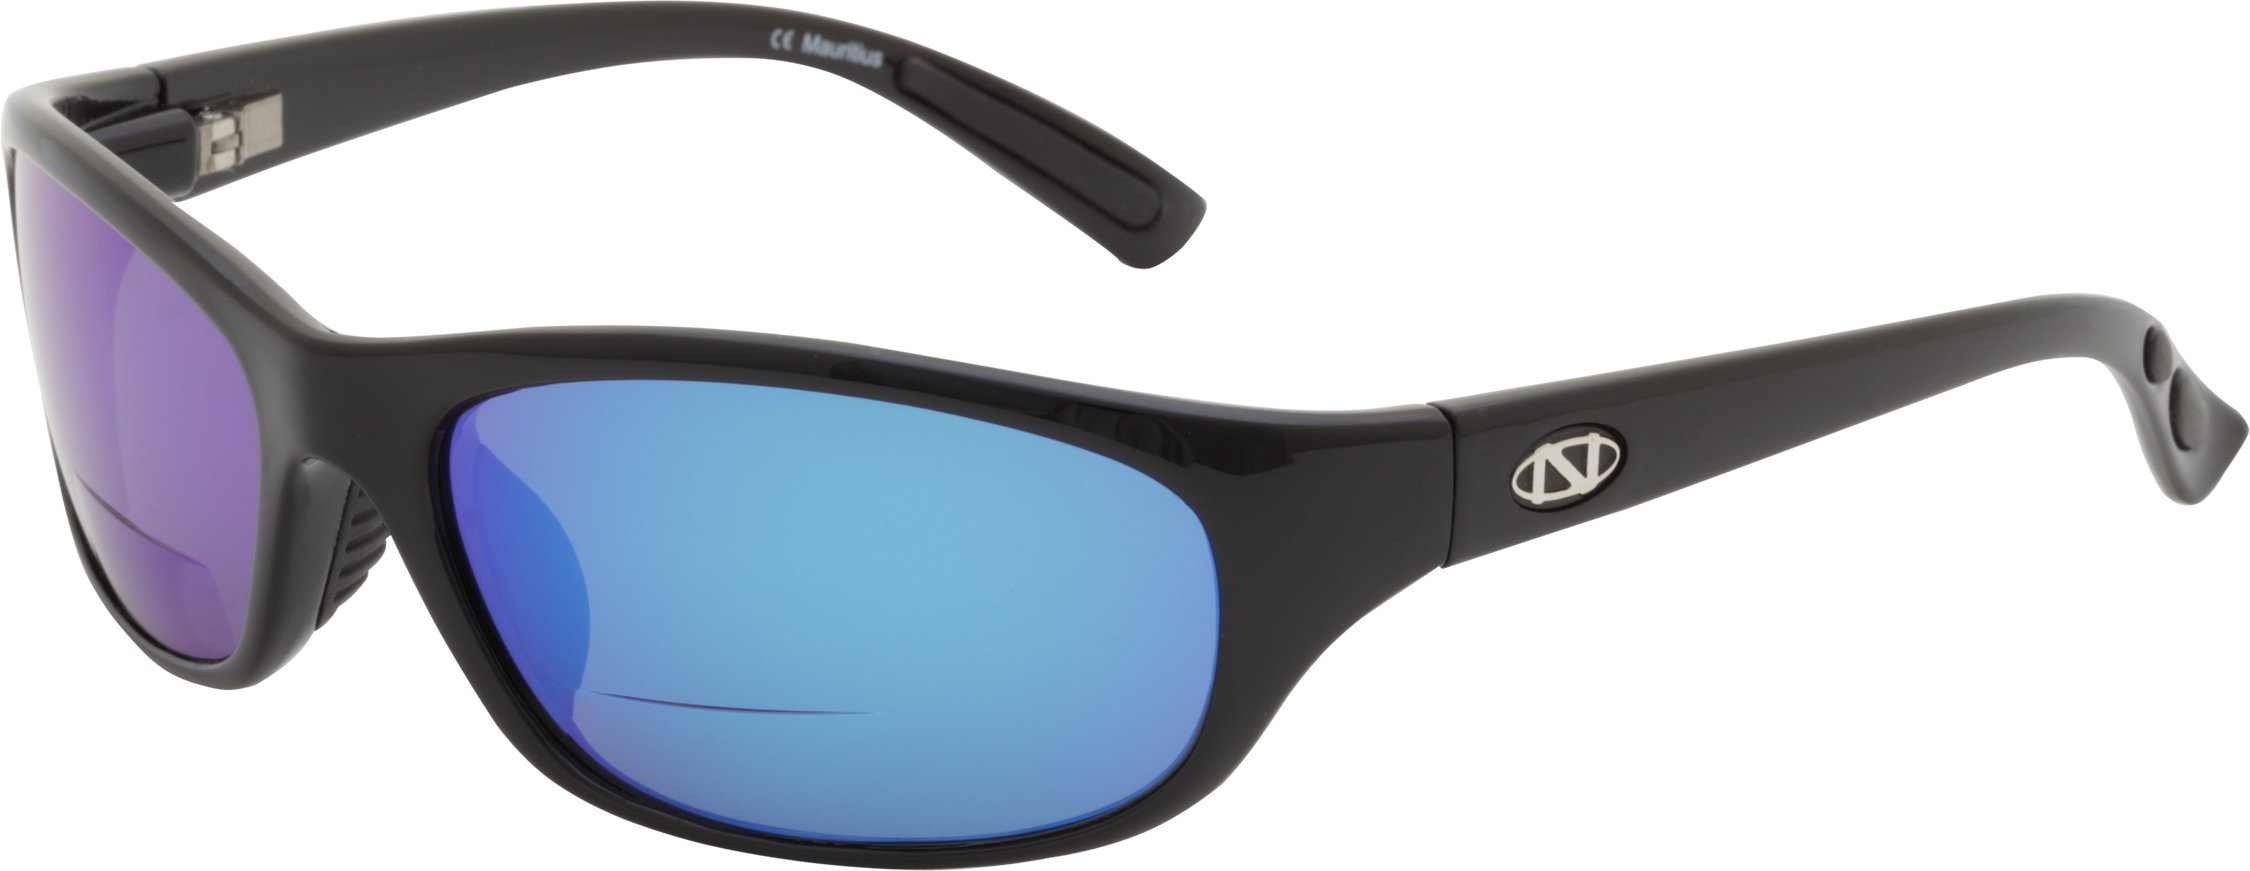 ONOS Carabelle Polarized Sunglasses (+1.75 Add Power), Black, Blue/Grey